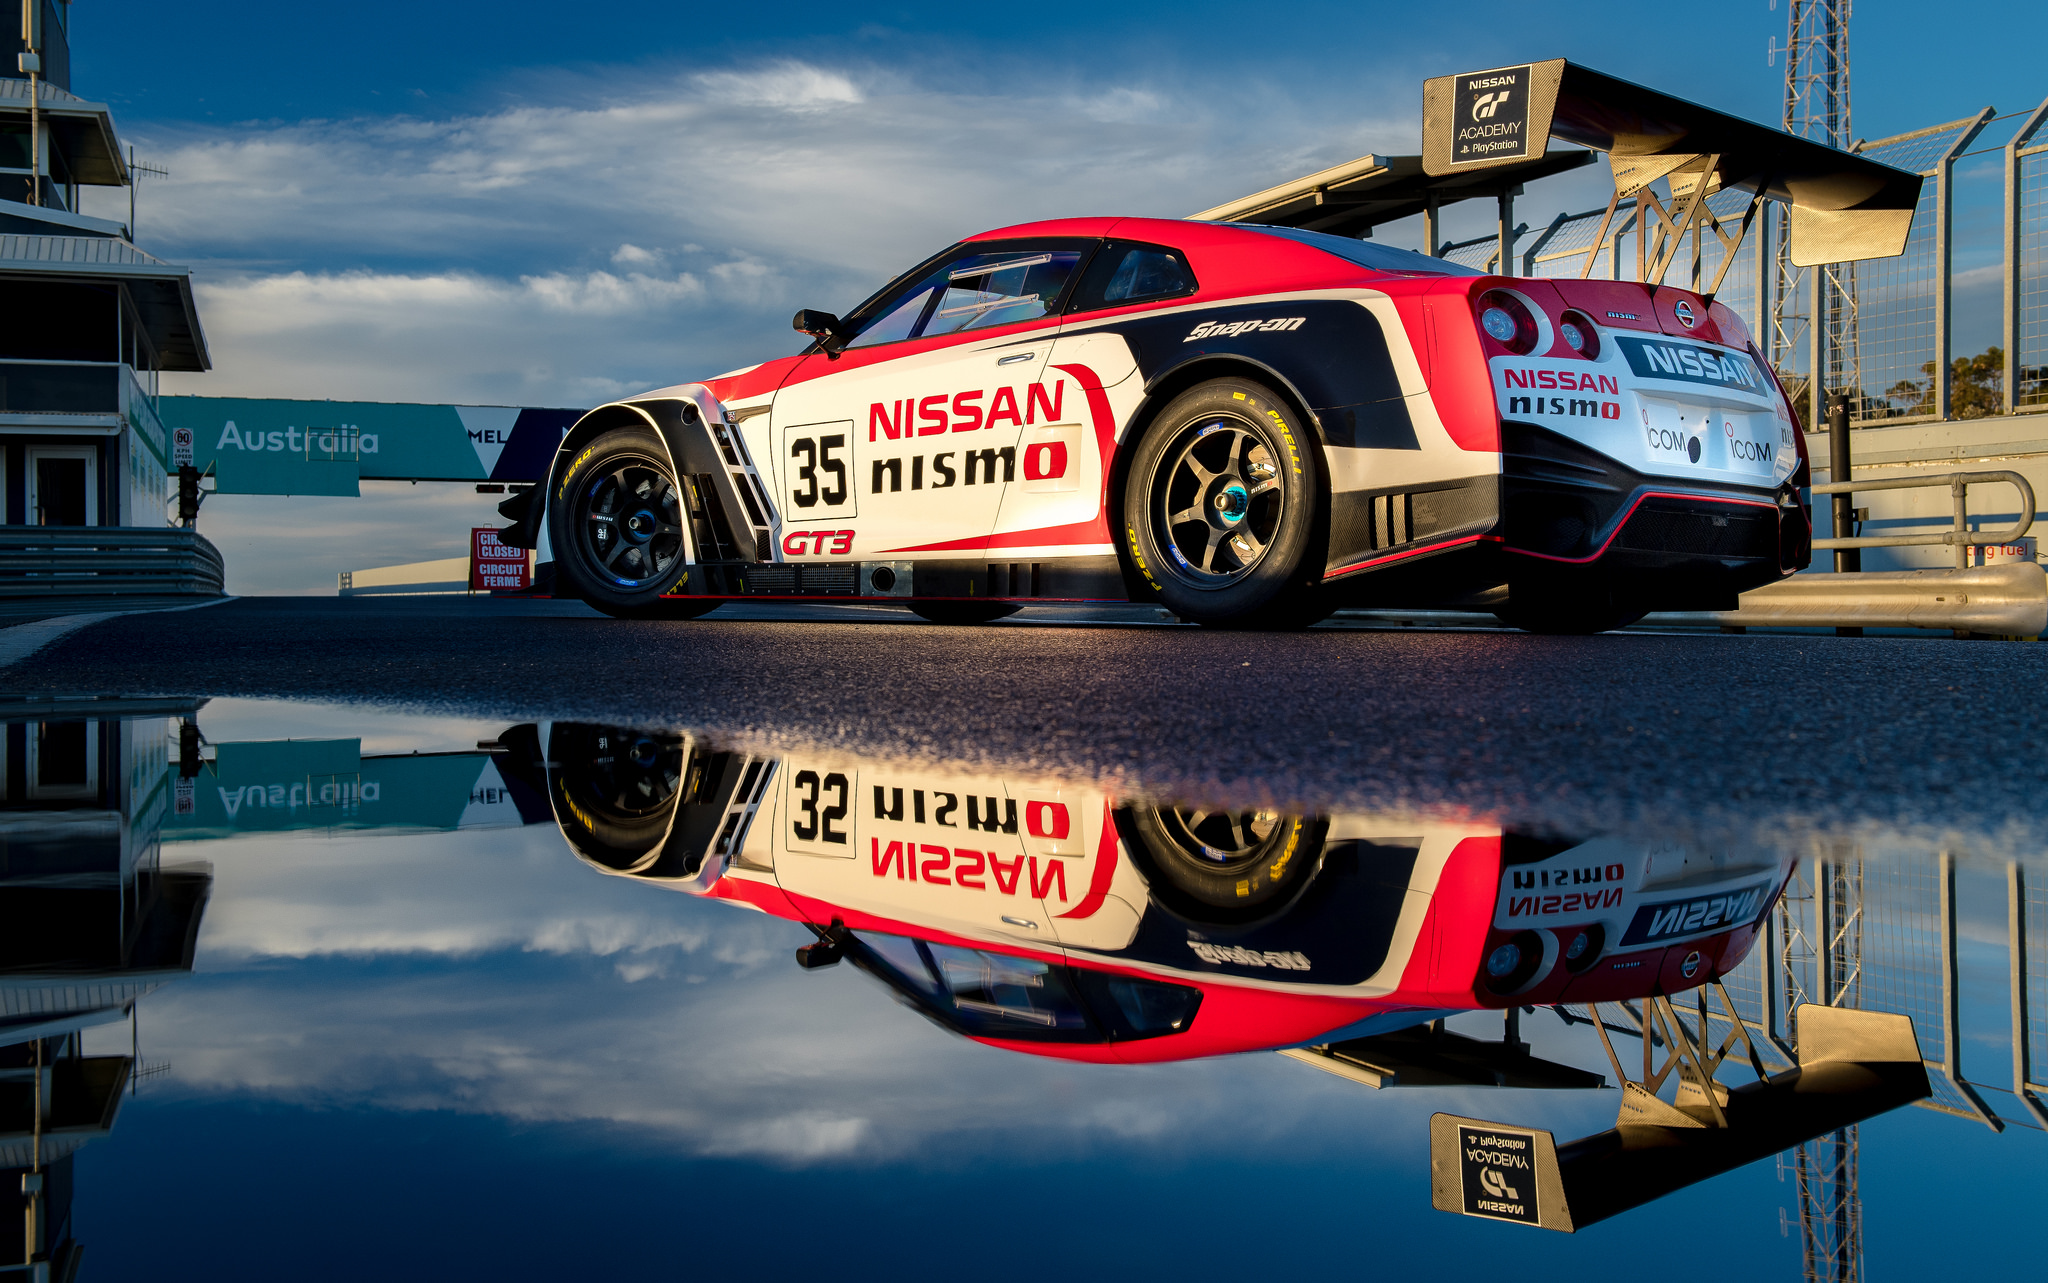 Nissan GT-R NISMO GT3 to make Australian GT Championship debut